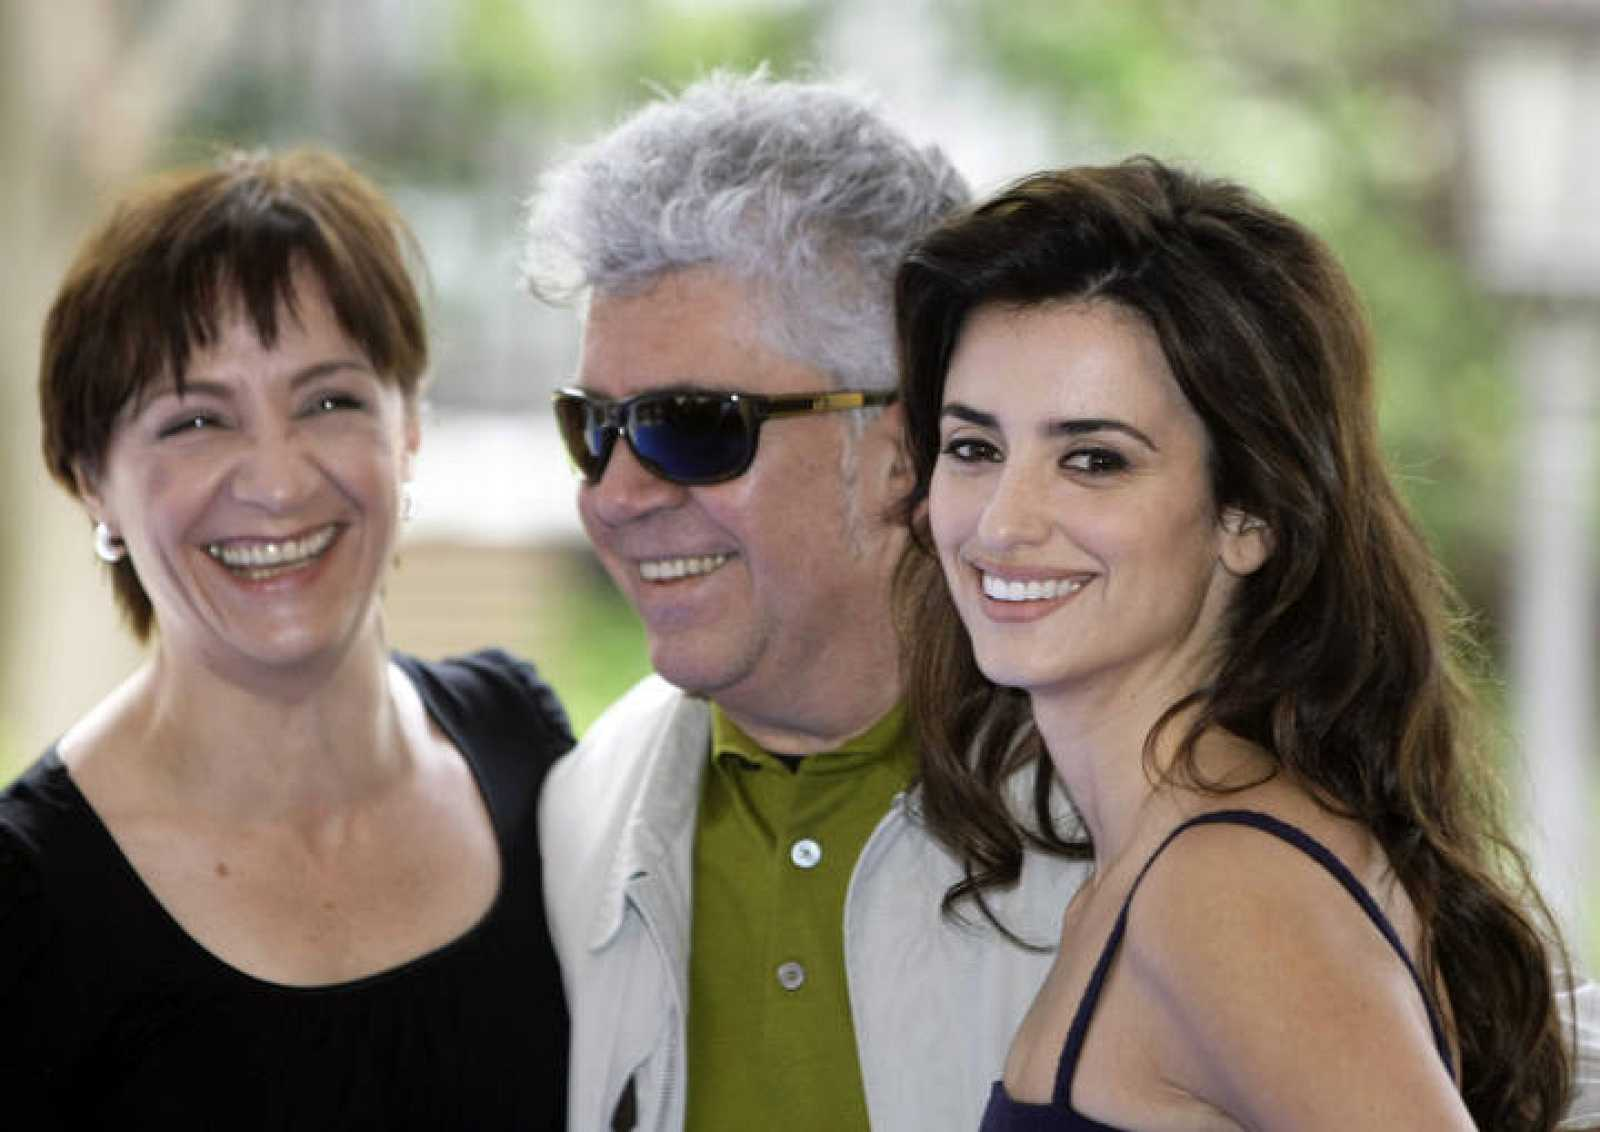 Spanish film director Almodovar and actresses Penelope Cruz and Portillo smile during a photocall in Madrid